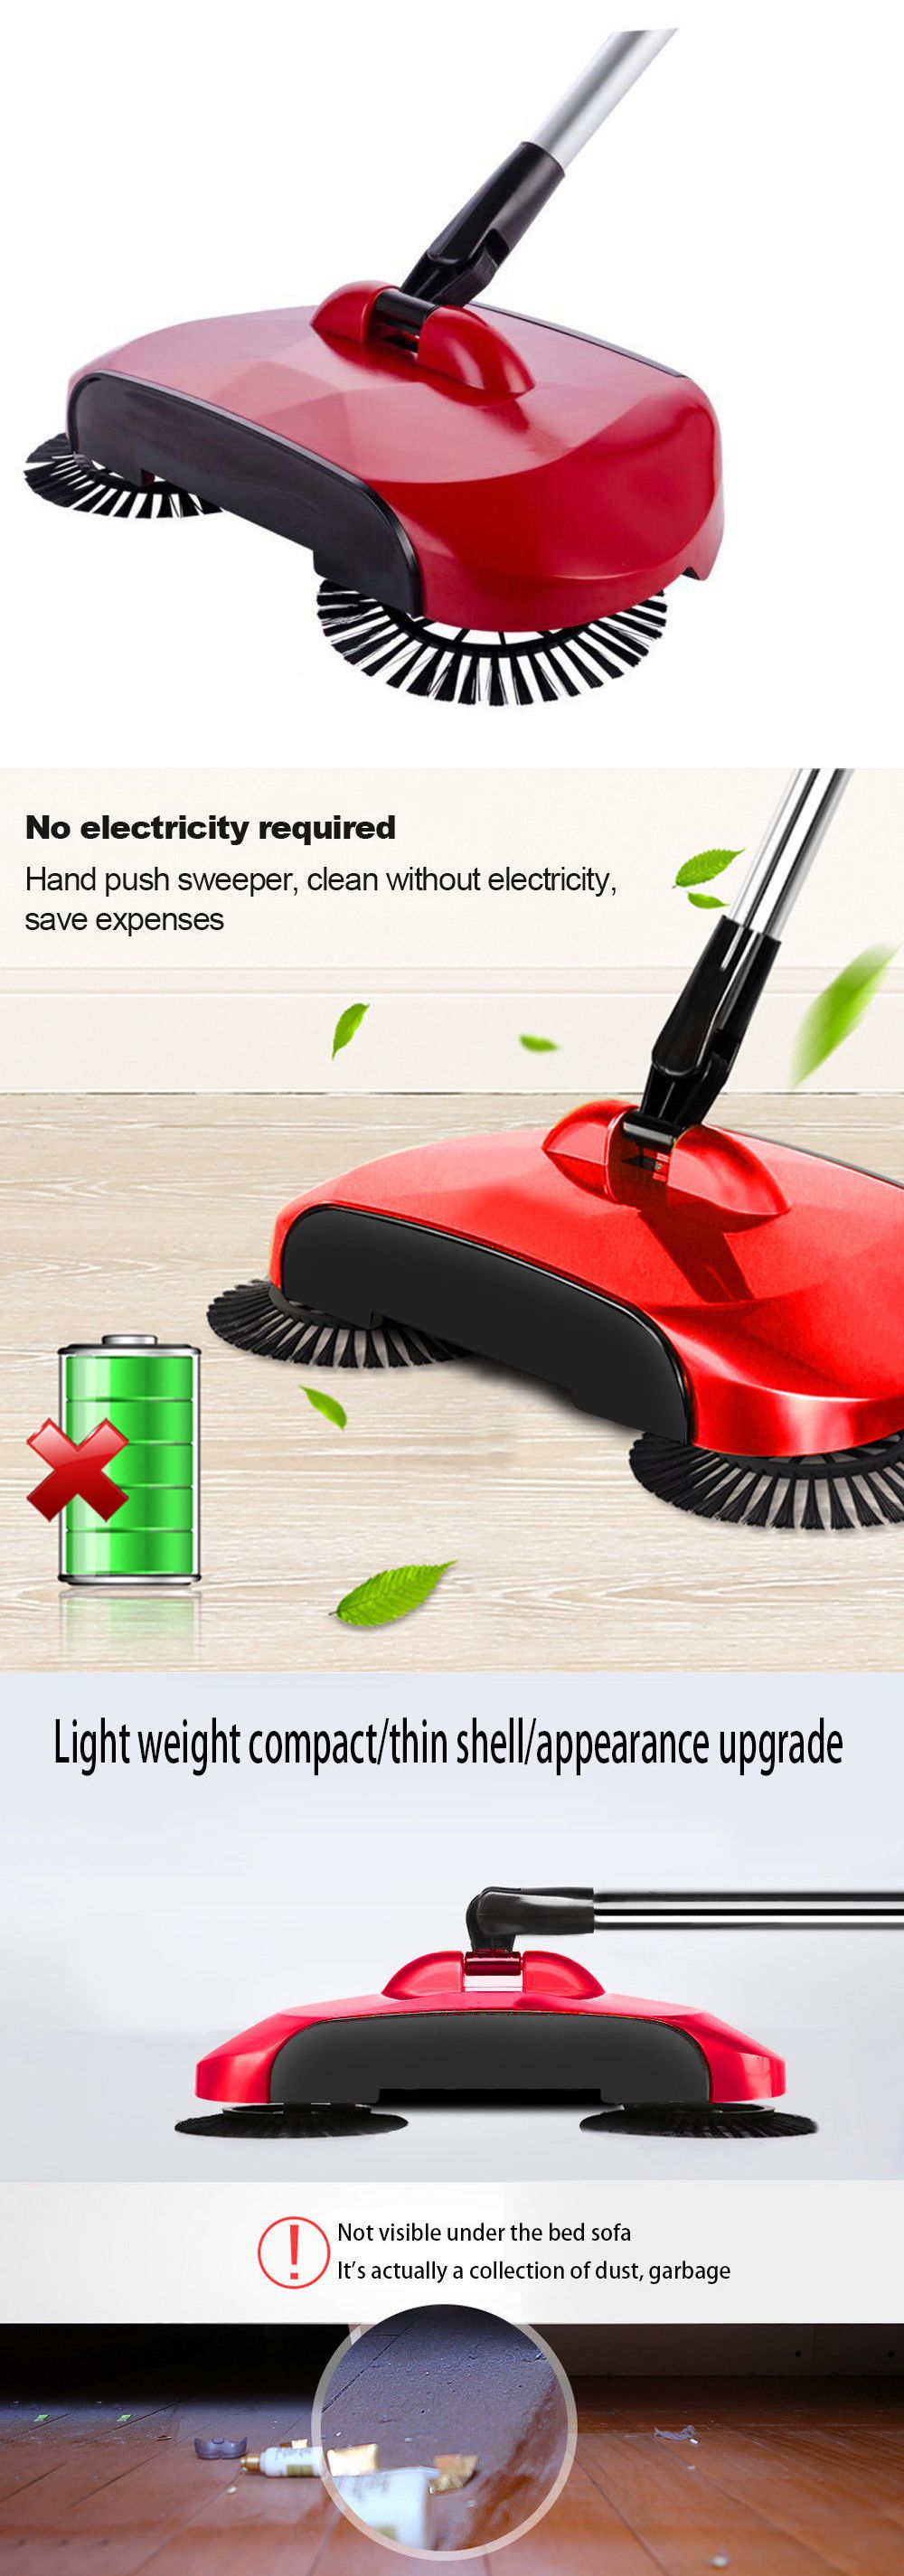 Carpet And Floor Sweepers 79657 Hand Push 360 Rotary Home Use Magic Manual Telescopic Floor Dust Sweeper Fedex Buy It Now O Floor Sweepers Flooring Rotary